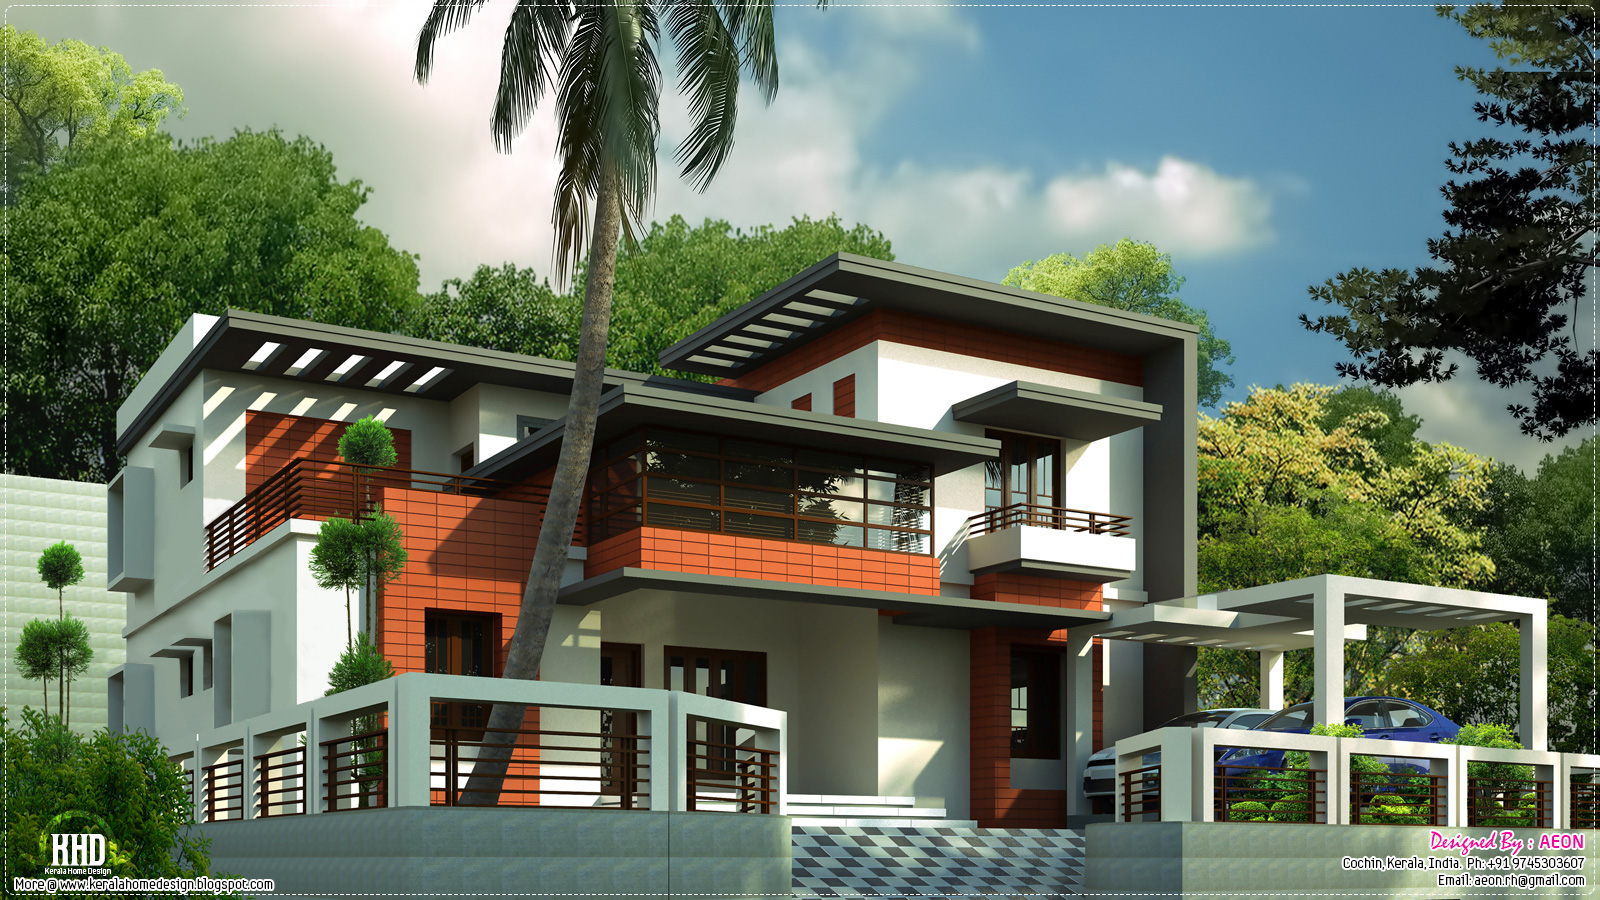 February 2013 kerala home design and floor plans for Modern house design 2015 philippines